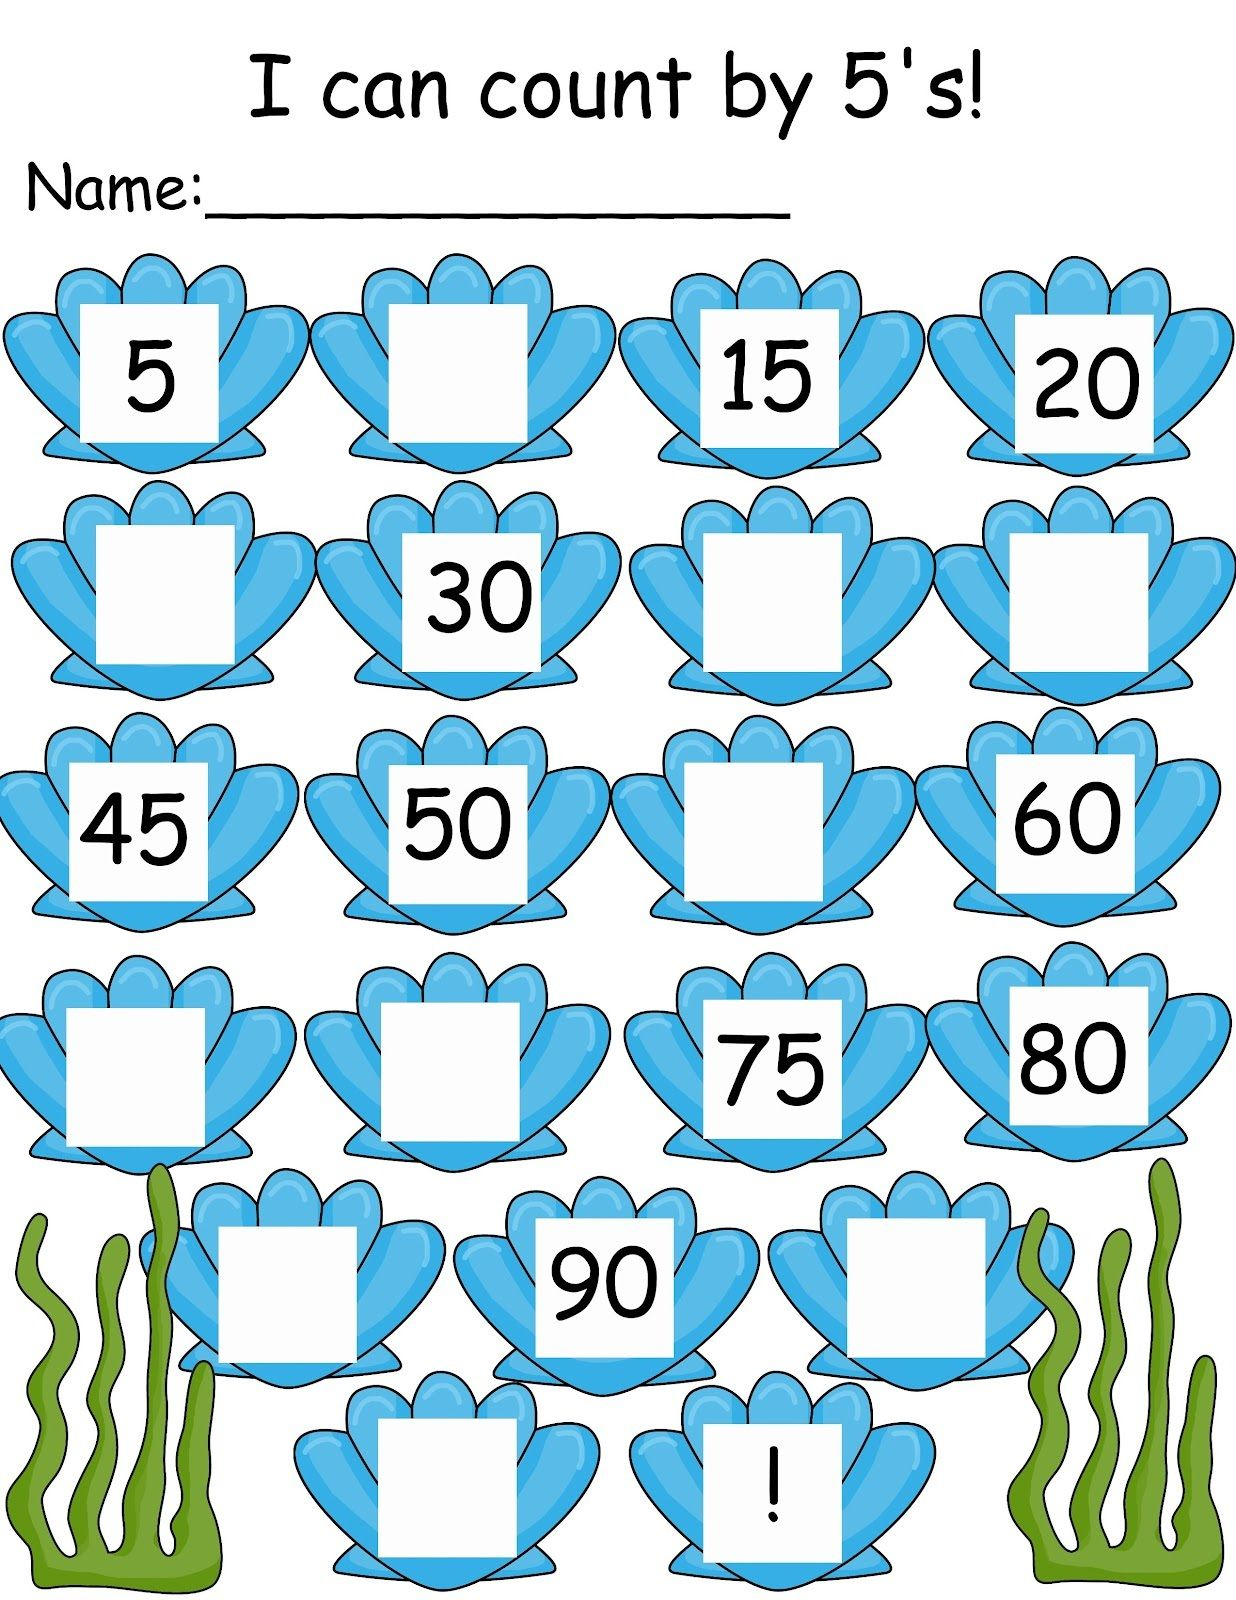 Skip Count Worksheets Printable | Math Worksheets for Kids ...